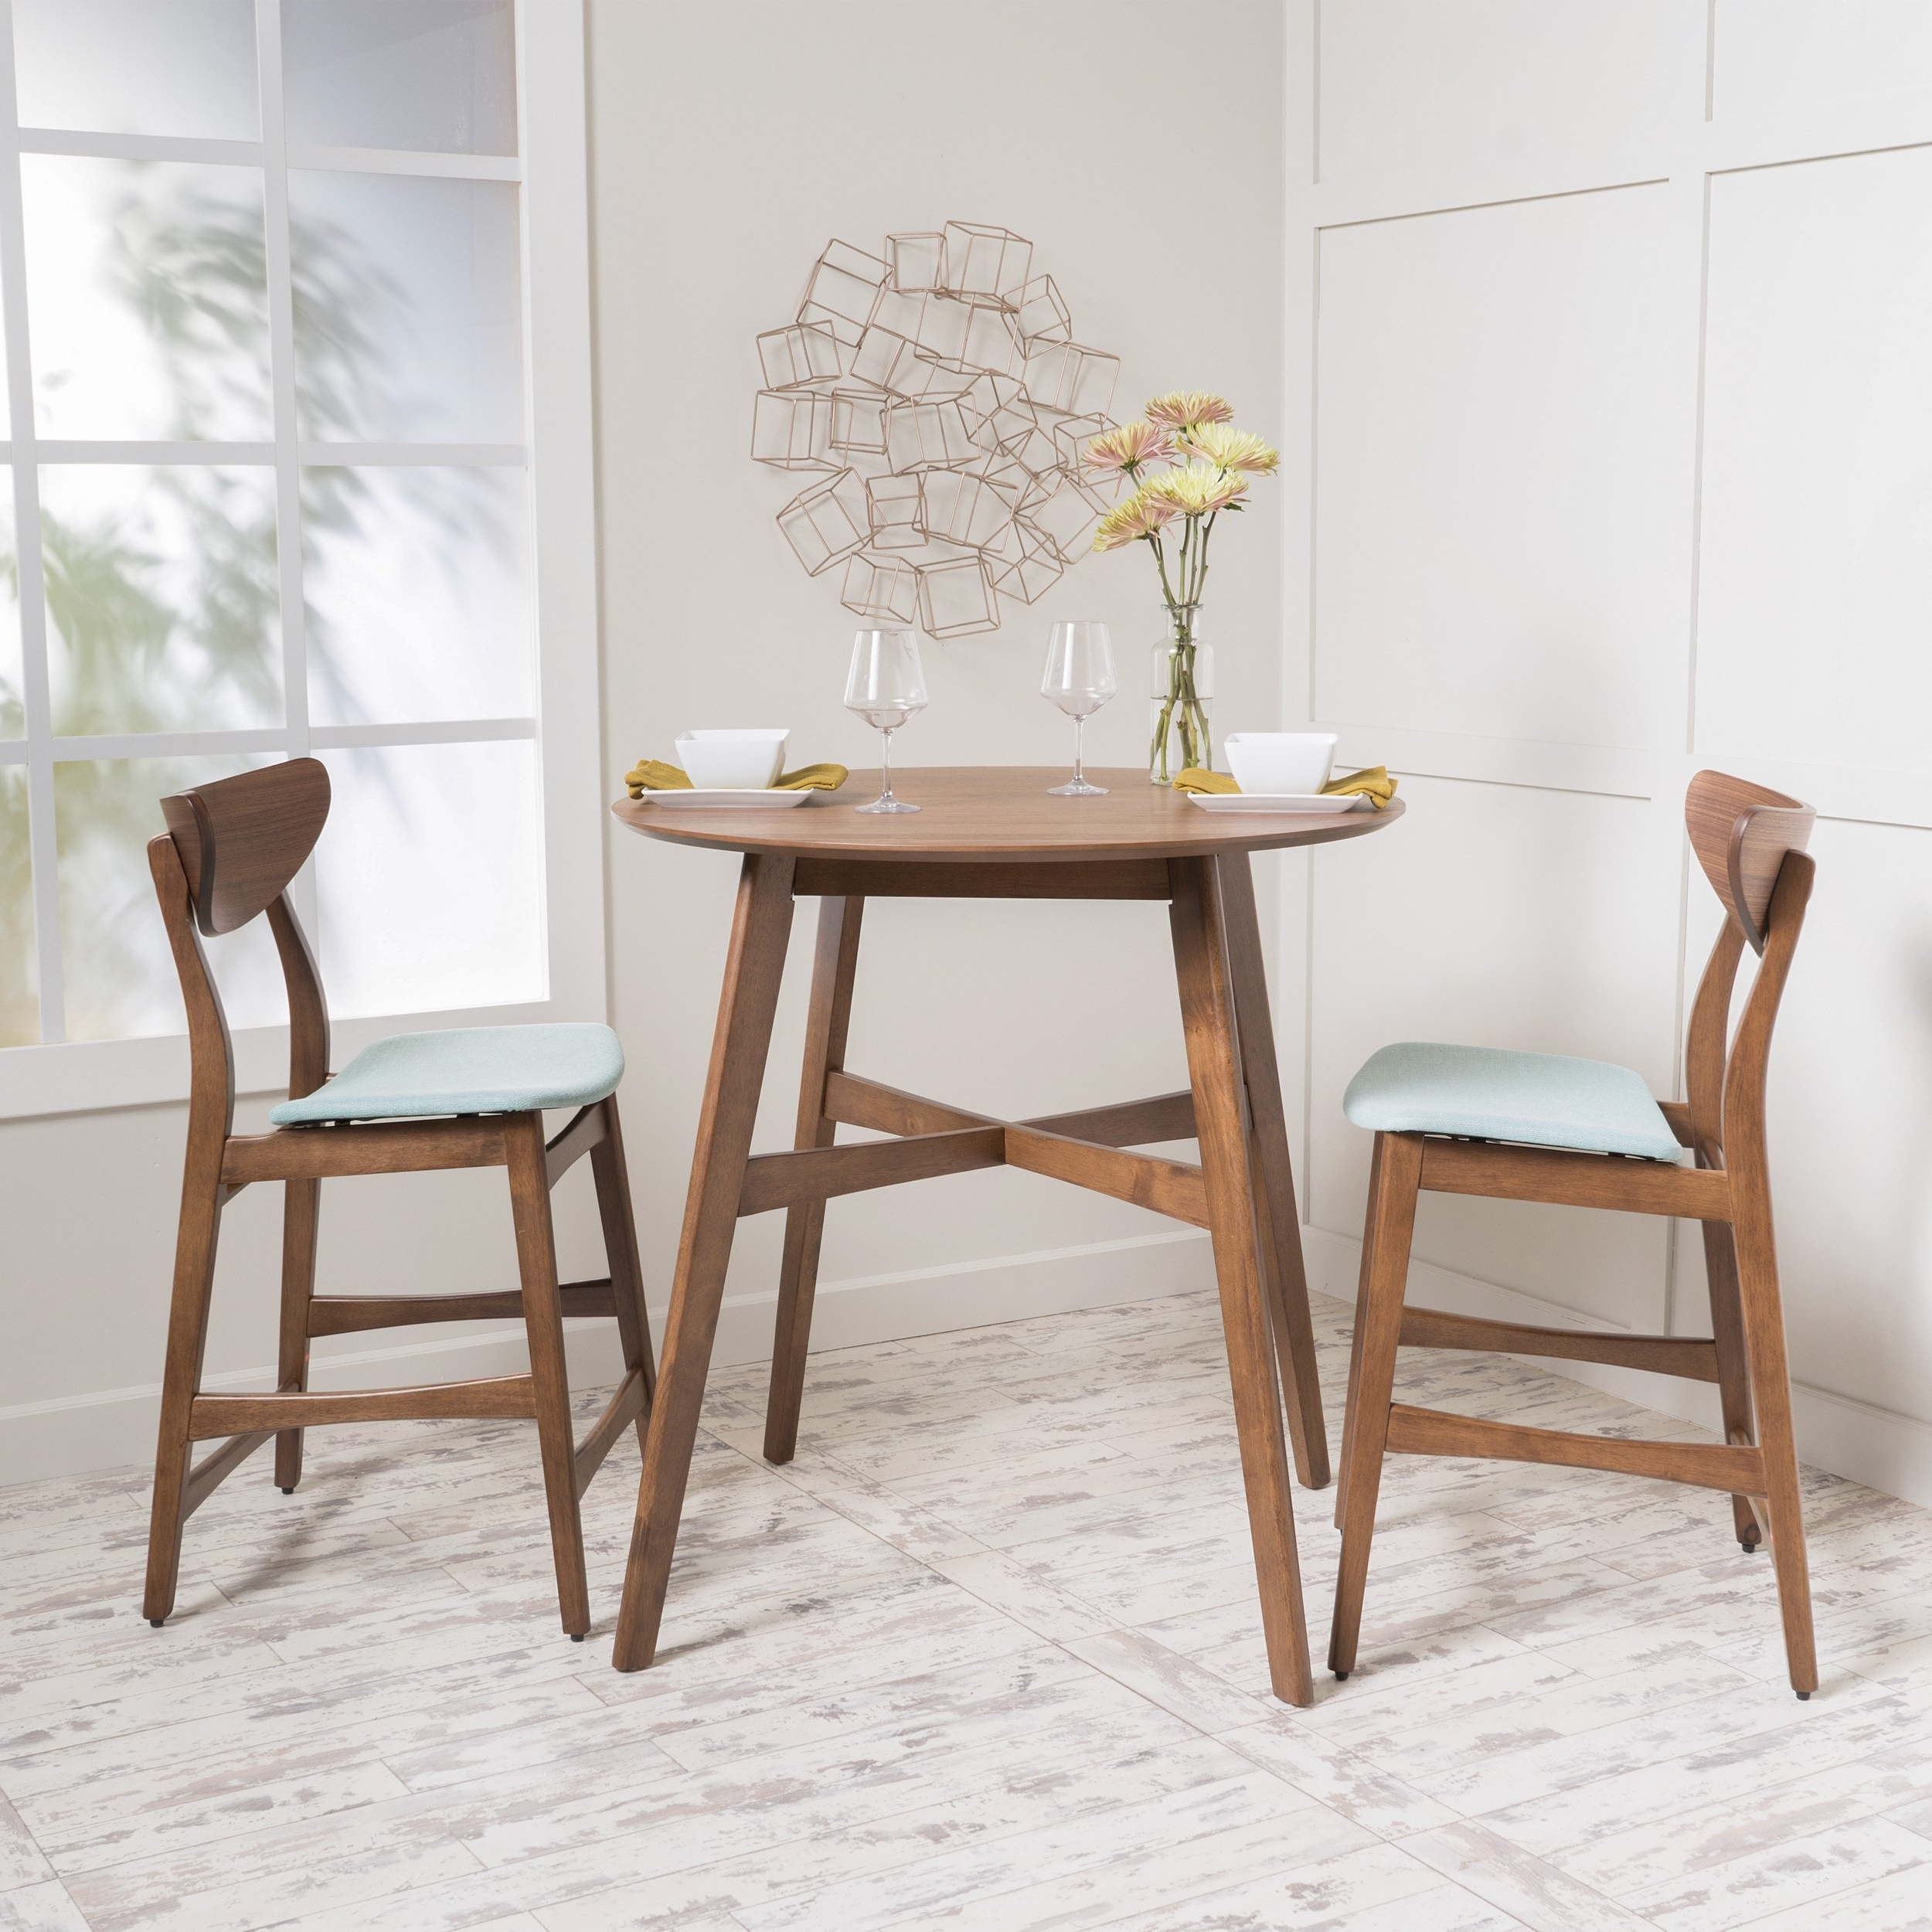 Gavin Dining Tables pertaining to Most Recent Shop Gavin 3-Piece Wood Counter-Height Round Dining Set